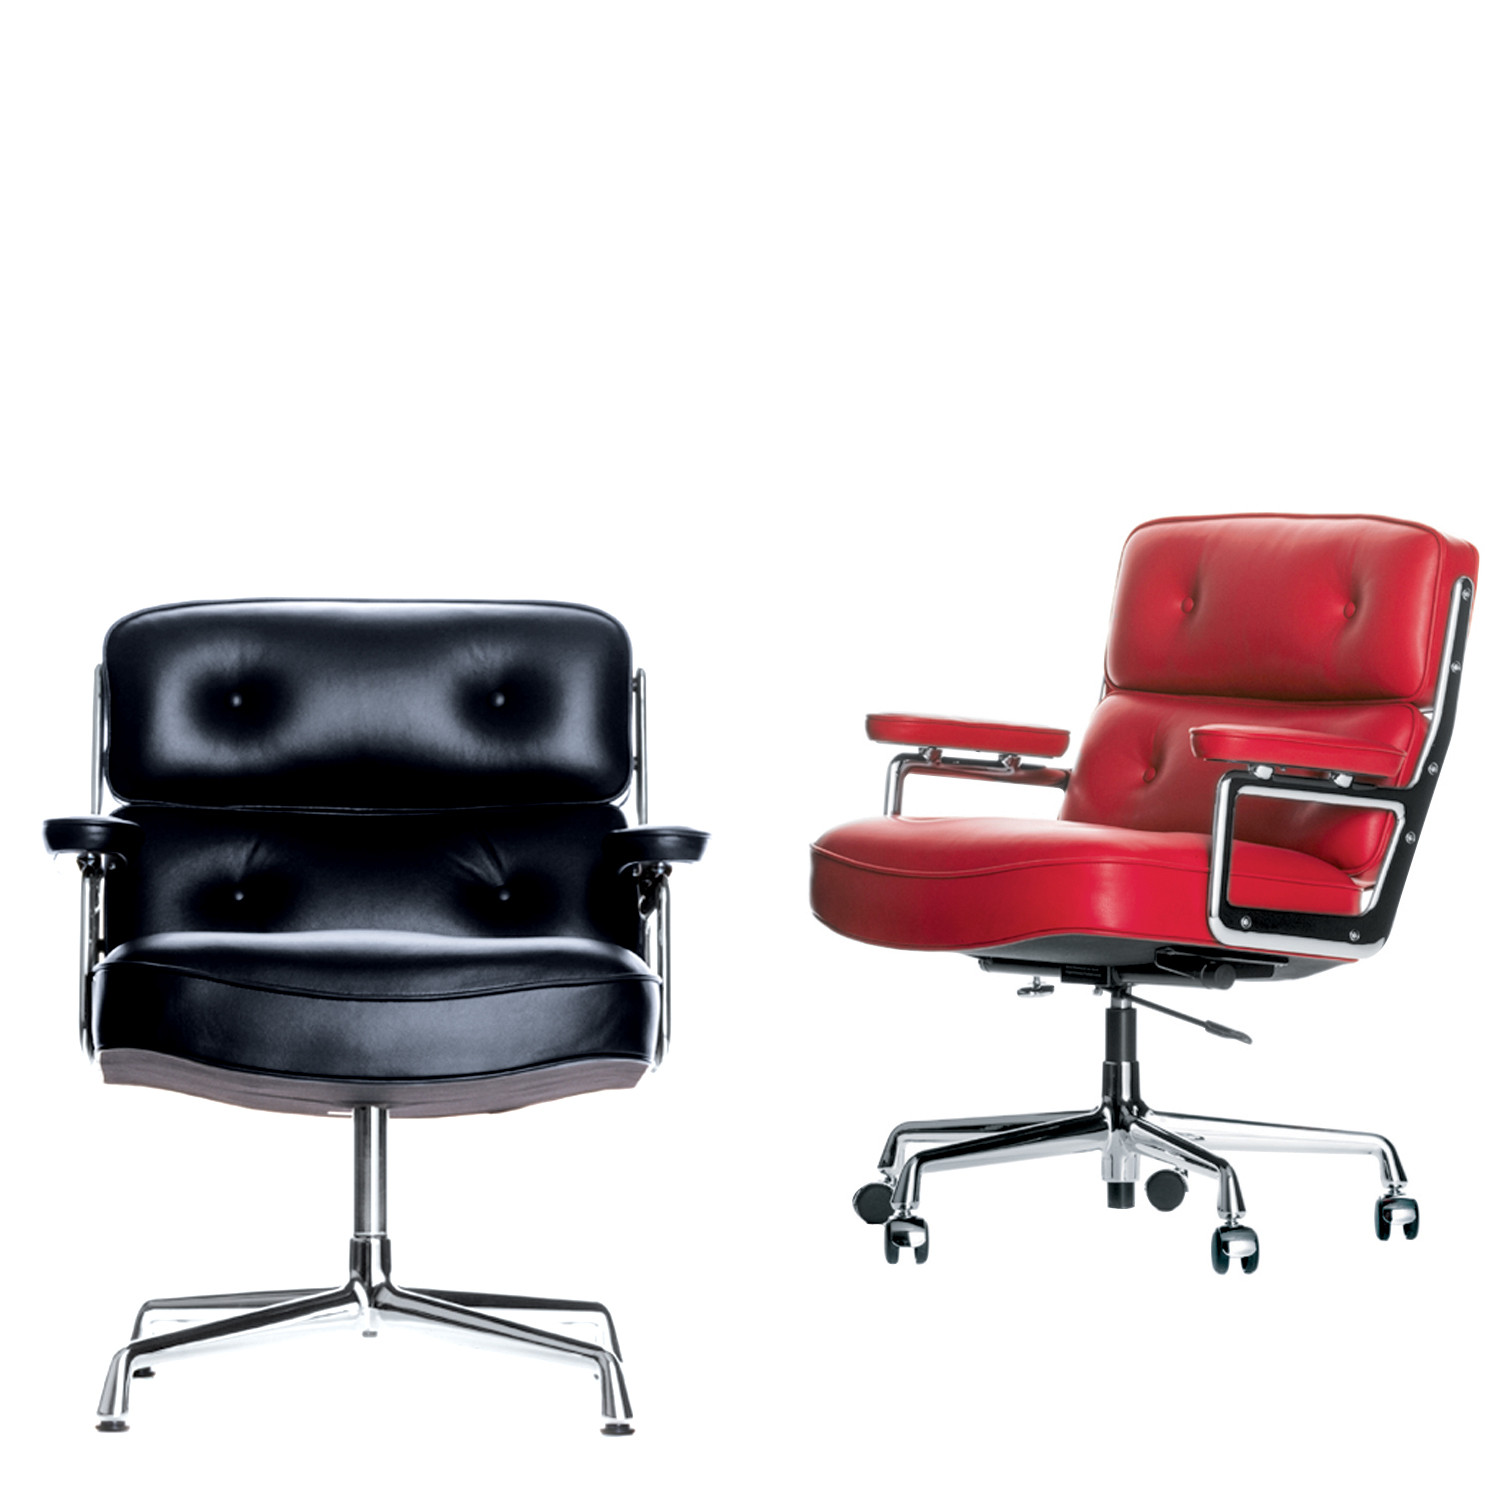 lobby chair es 104 105 108 eames seating apres furniture. Black Bedroom Furniture Sets. Home Design Ideas